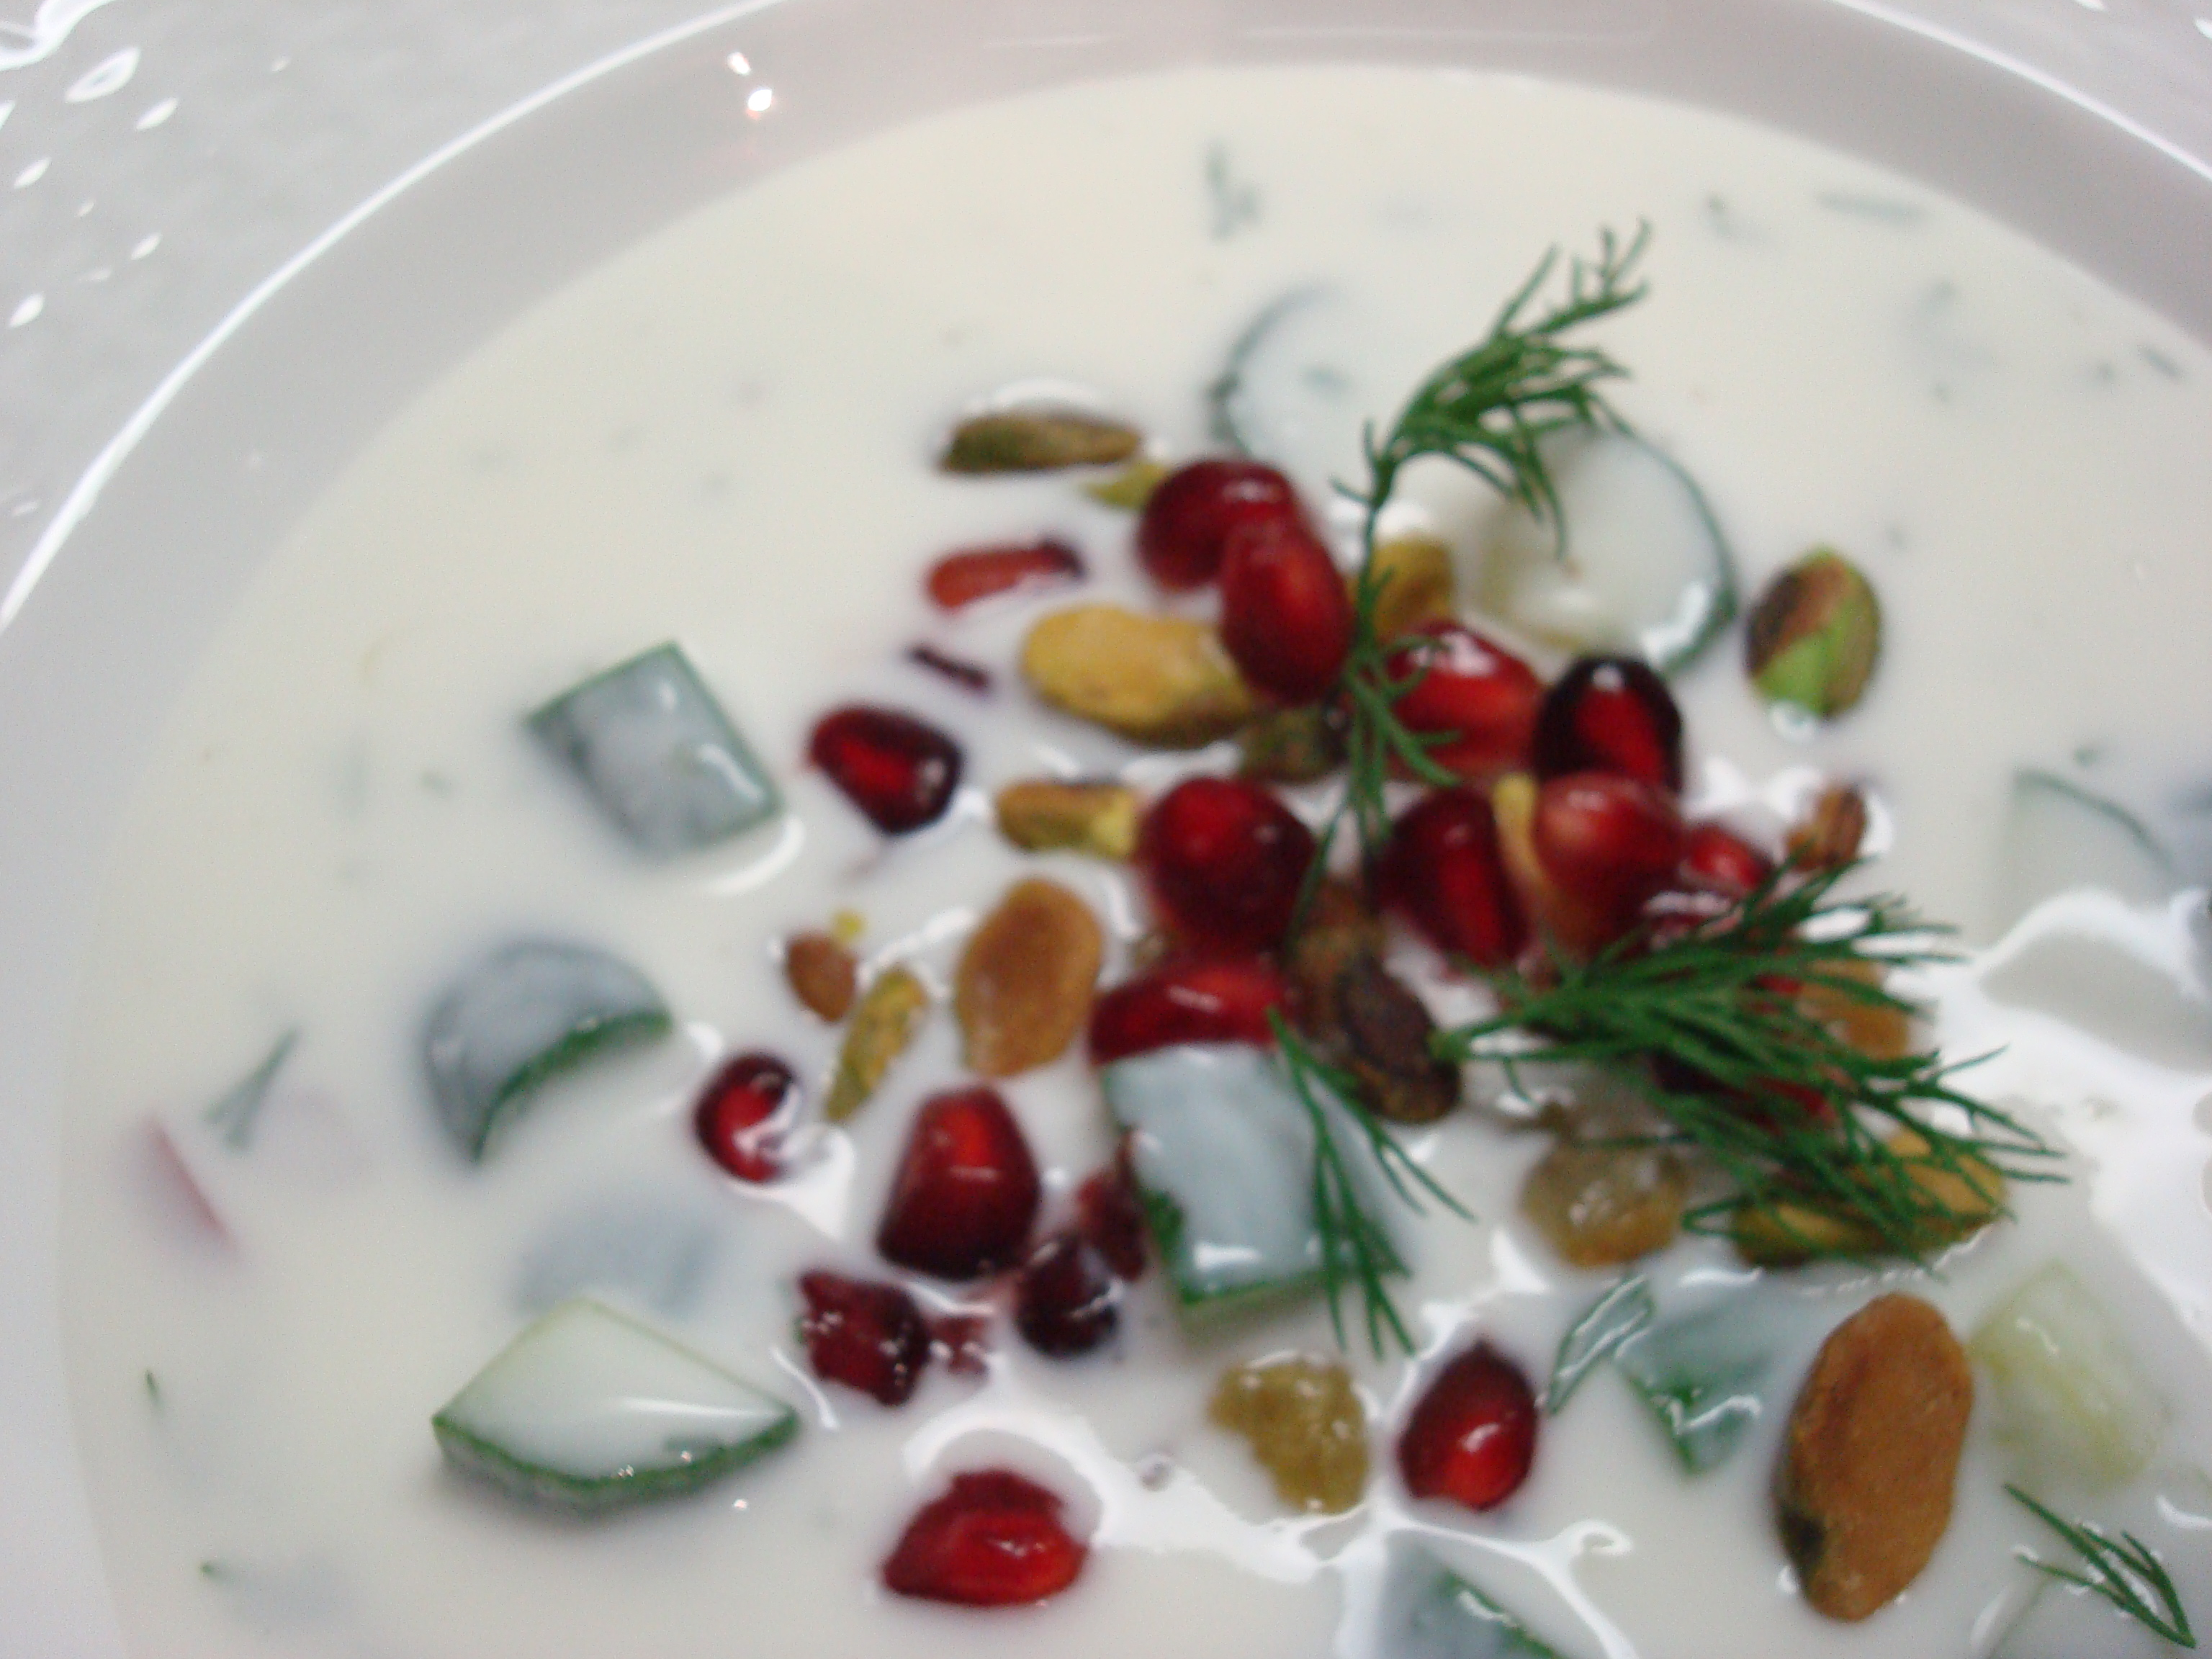 Chilled Persian Yogurt and Cucumber Soup with Pistachio and Pomegranate